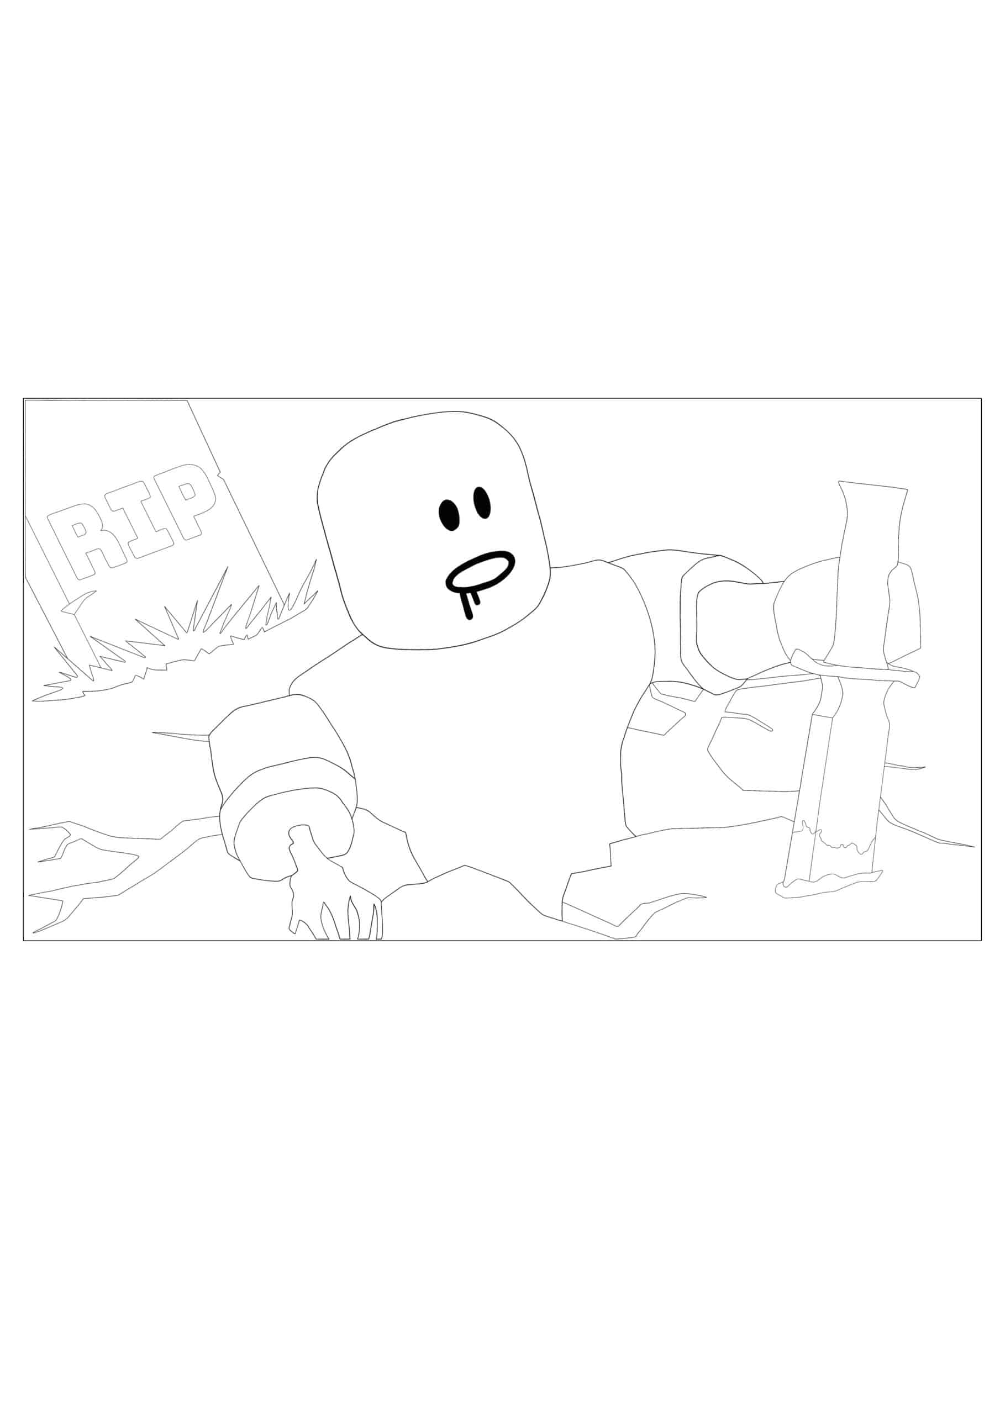 Roblox Zombie Coloring Pages 2 Free Coloring Sheets 2021 In 2021 Free Coloring Sheets Coloring Pages Free Coloring [ 1414 x 1000 Pixel ]